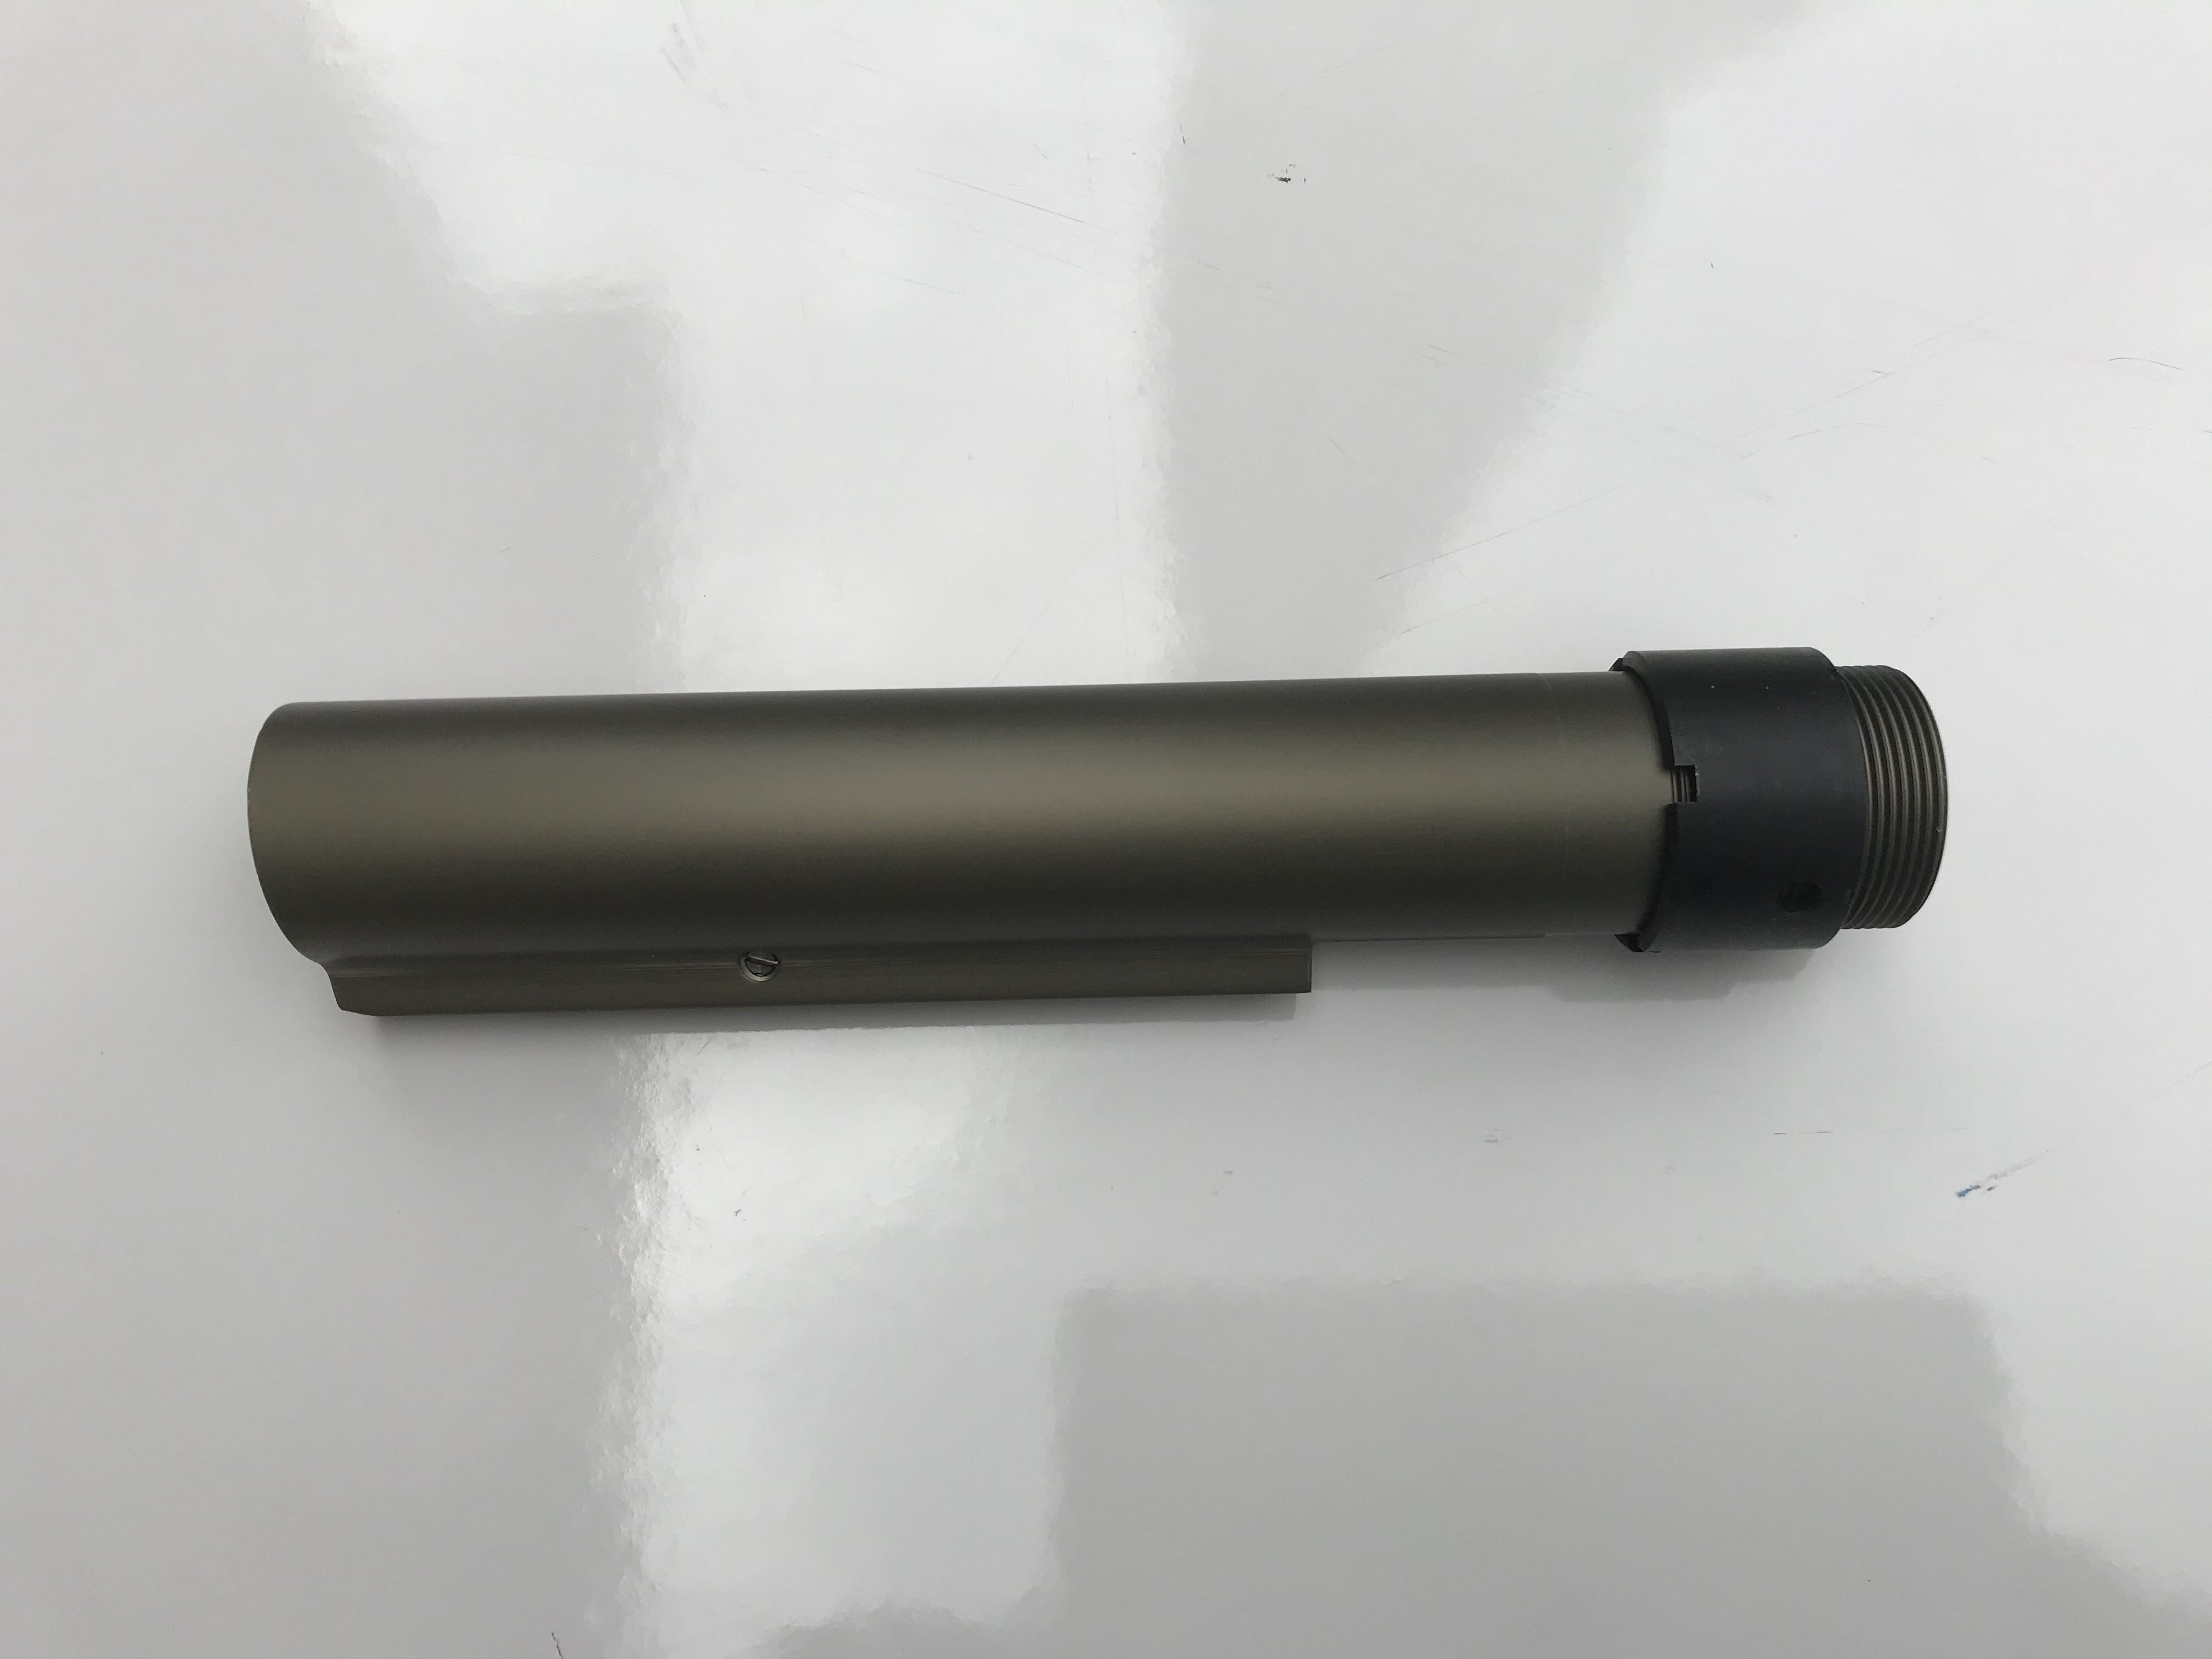 WTS: HK417 receiver extension Ral8000, BARREL NUT-dc72d4b9-b695-4fde-b89d-0d77ef712231.jpeg